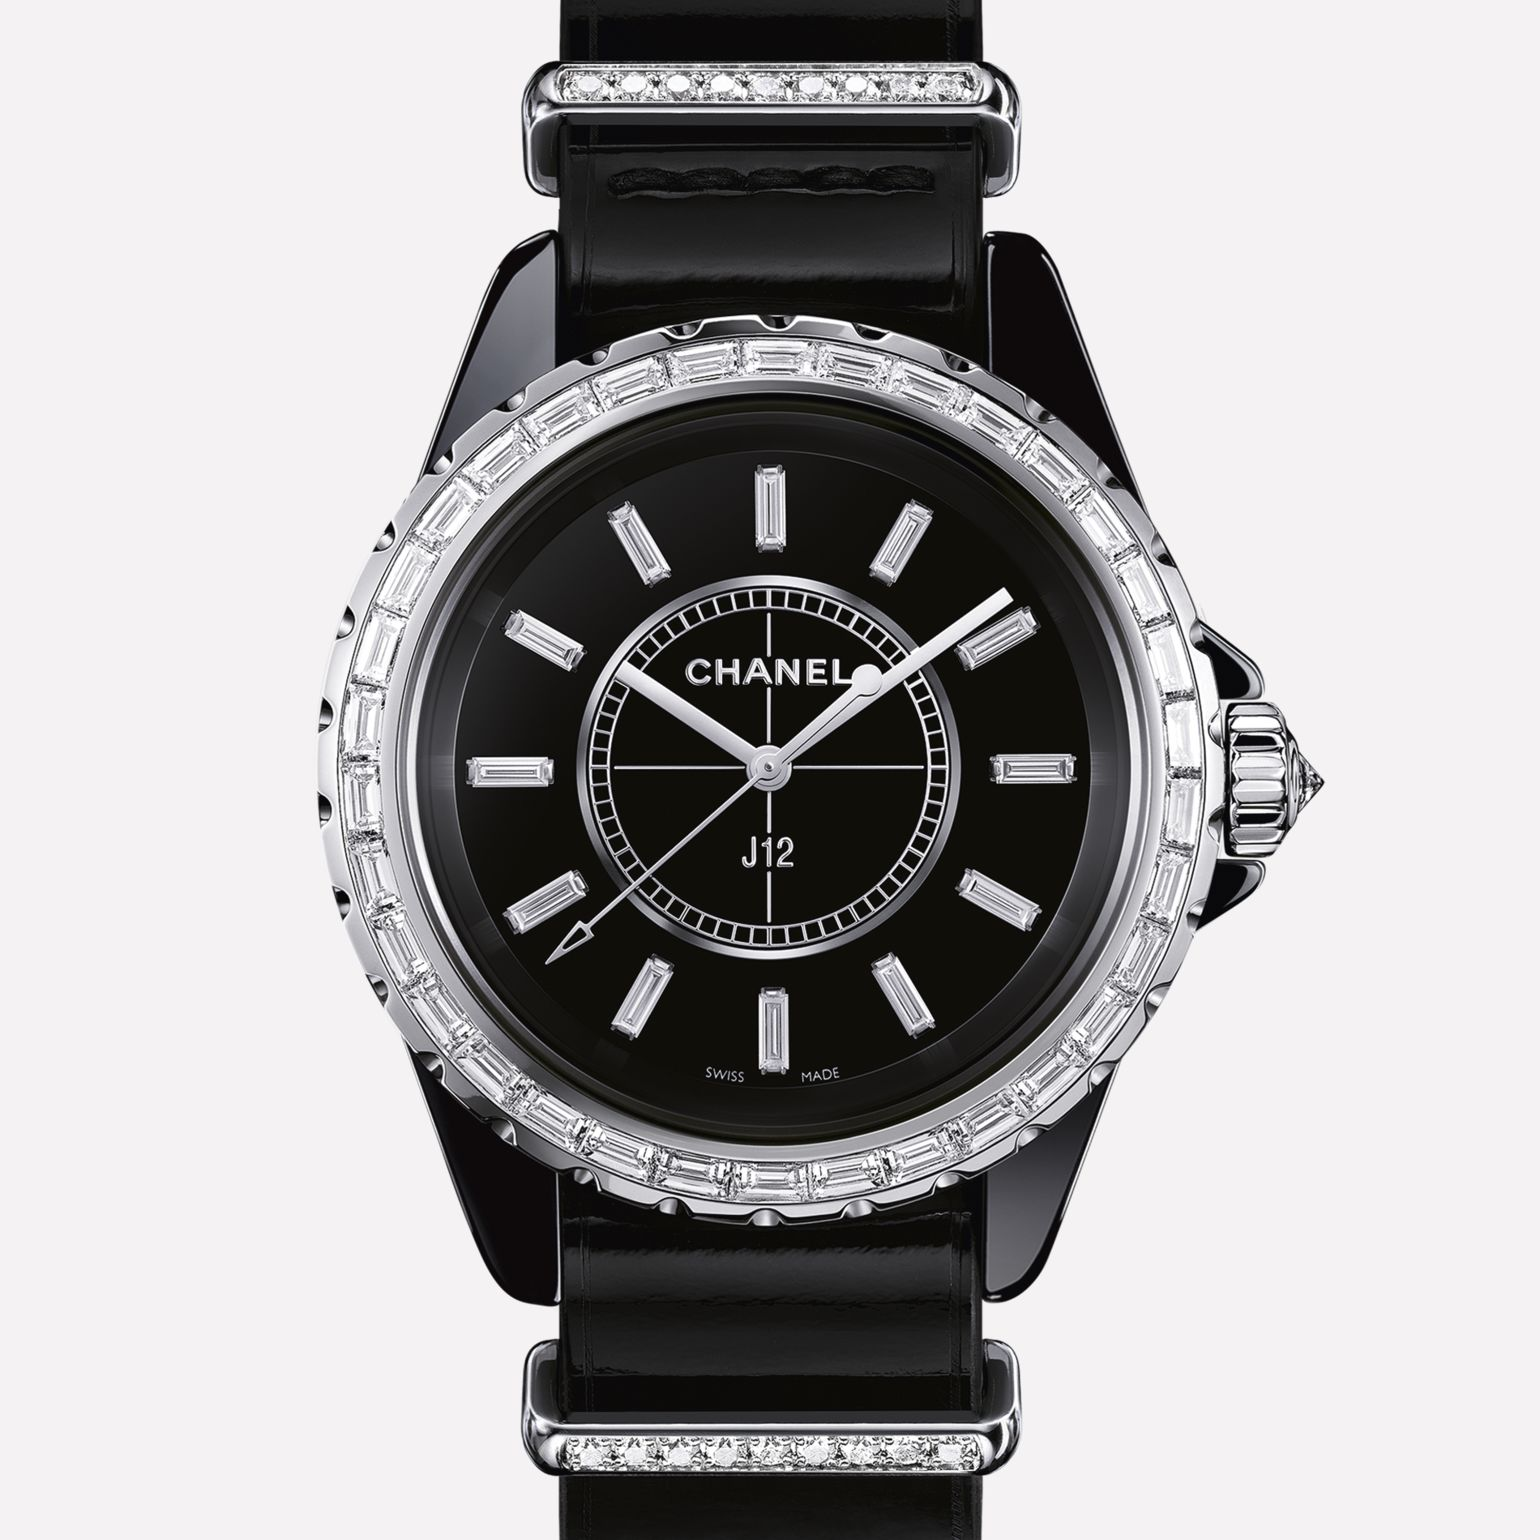 J12-G10 Jewellery Watch Black ceramic and white gold, bezel and indicators with baguette cut diamonds